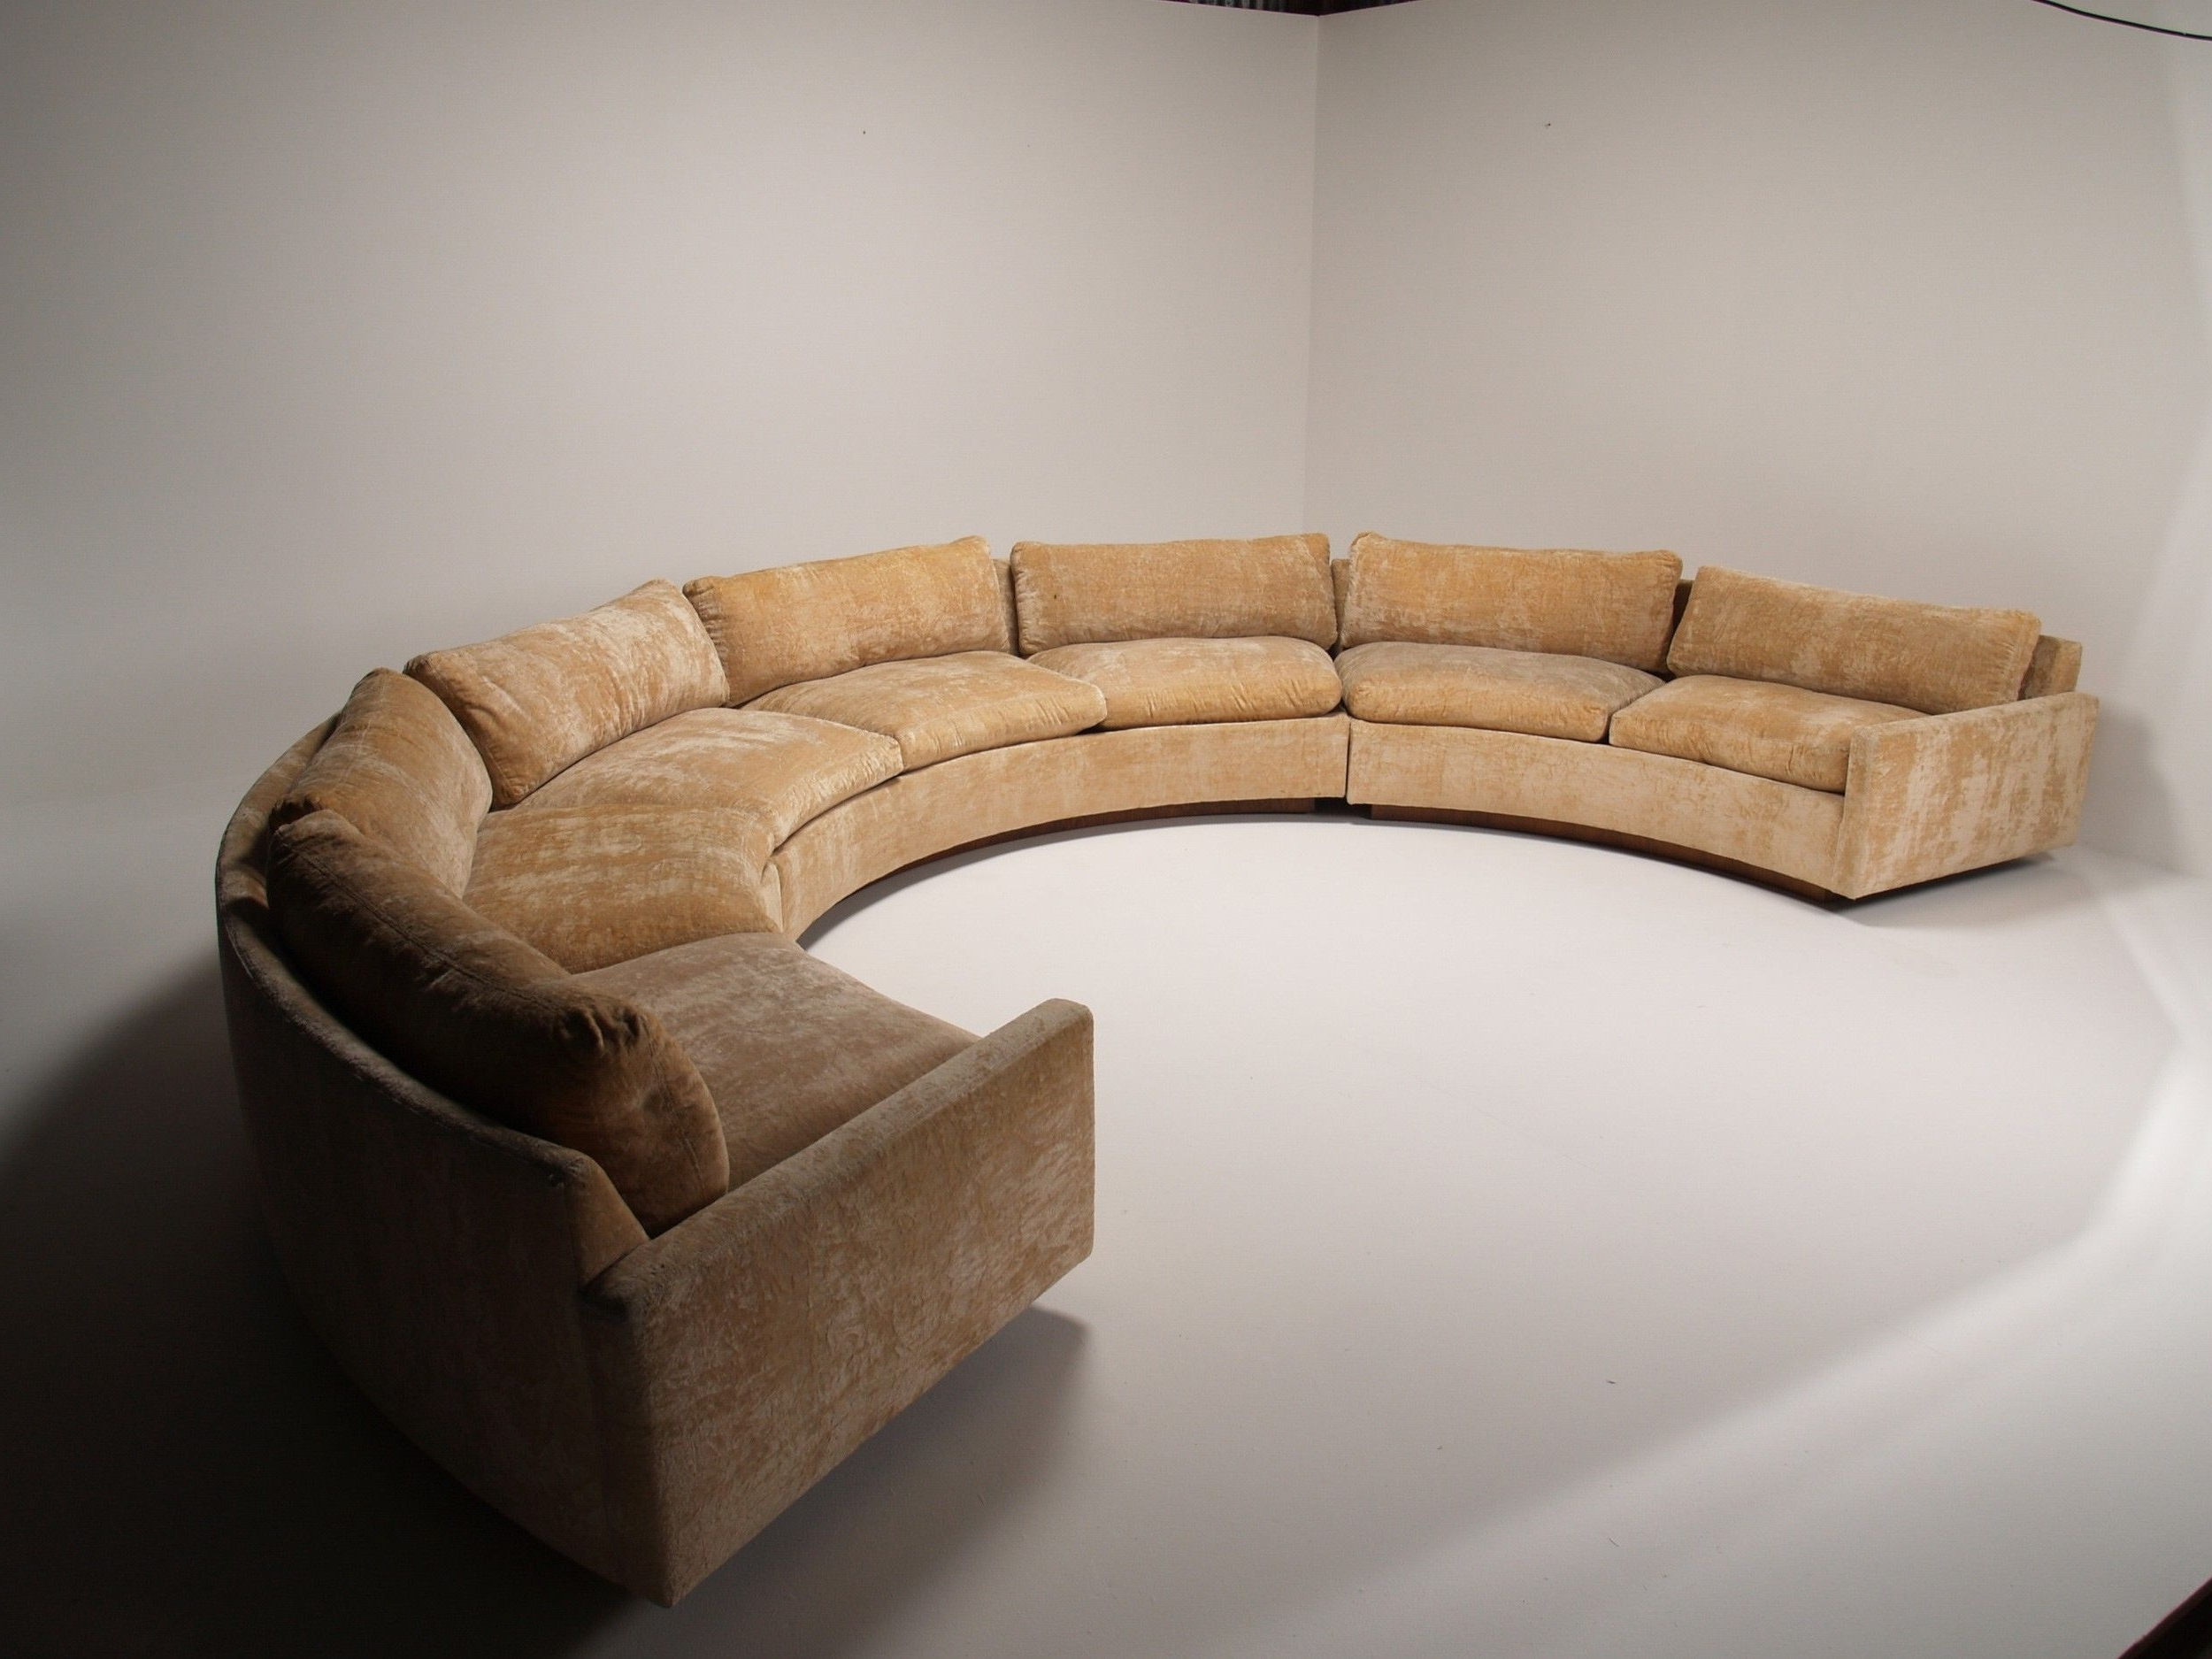 Popular Grey Velvet Curved Couch Without Cushions As Well As In Pertaining To Well Known Semicircular Sofas (View 9 of 20)